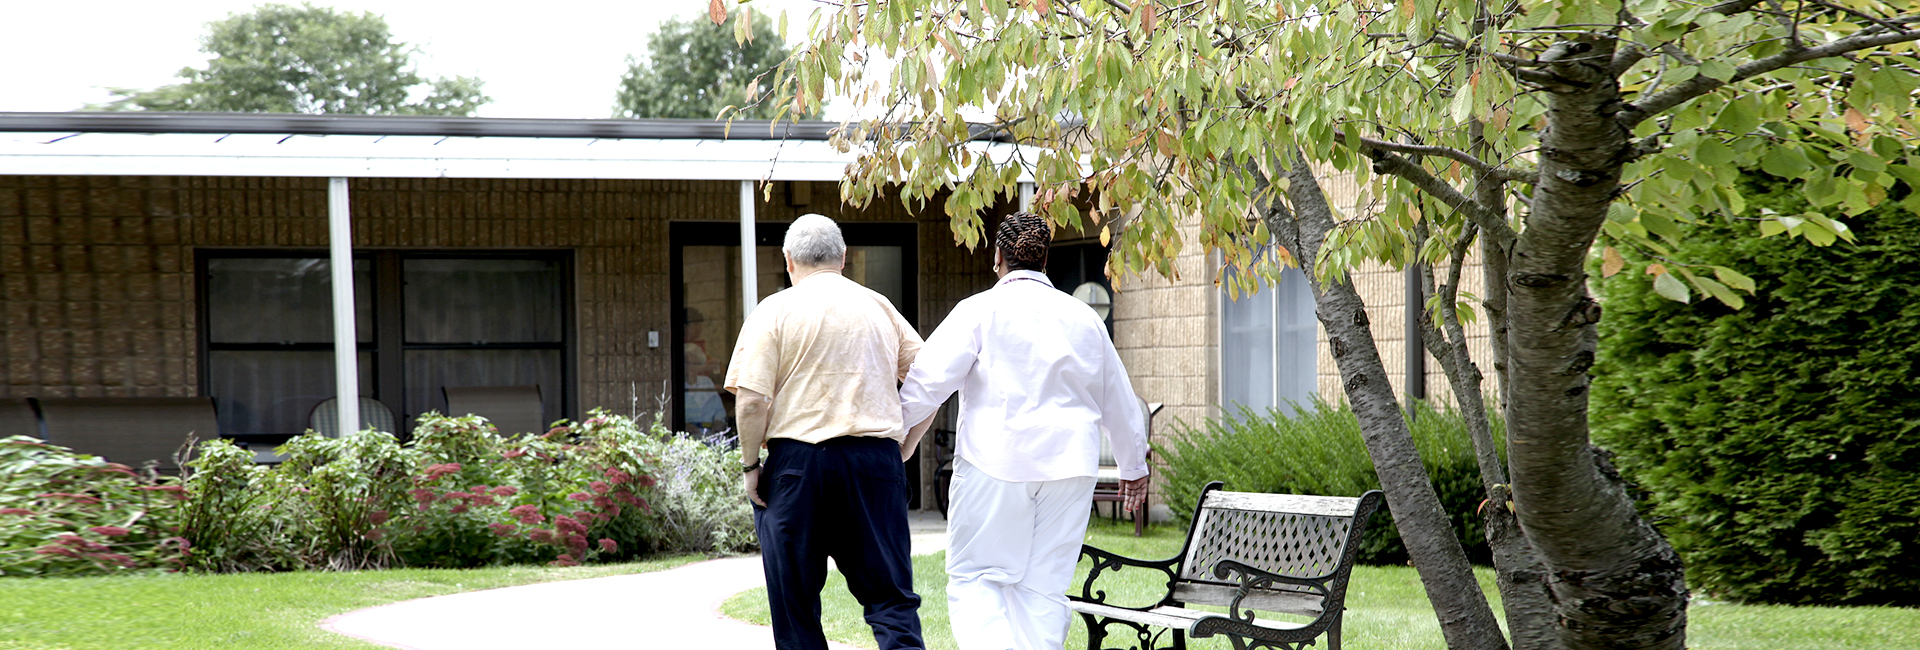 Nurse walking with Patient Photo